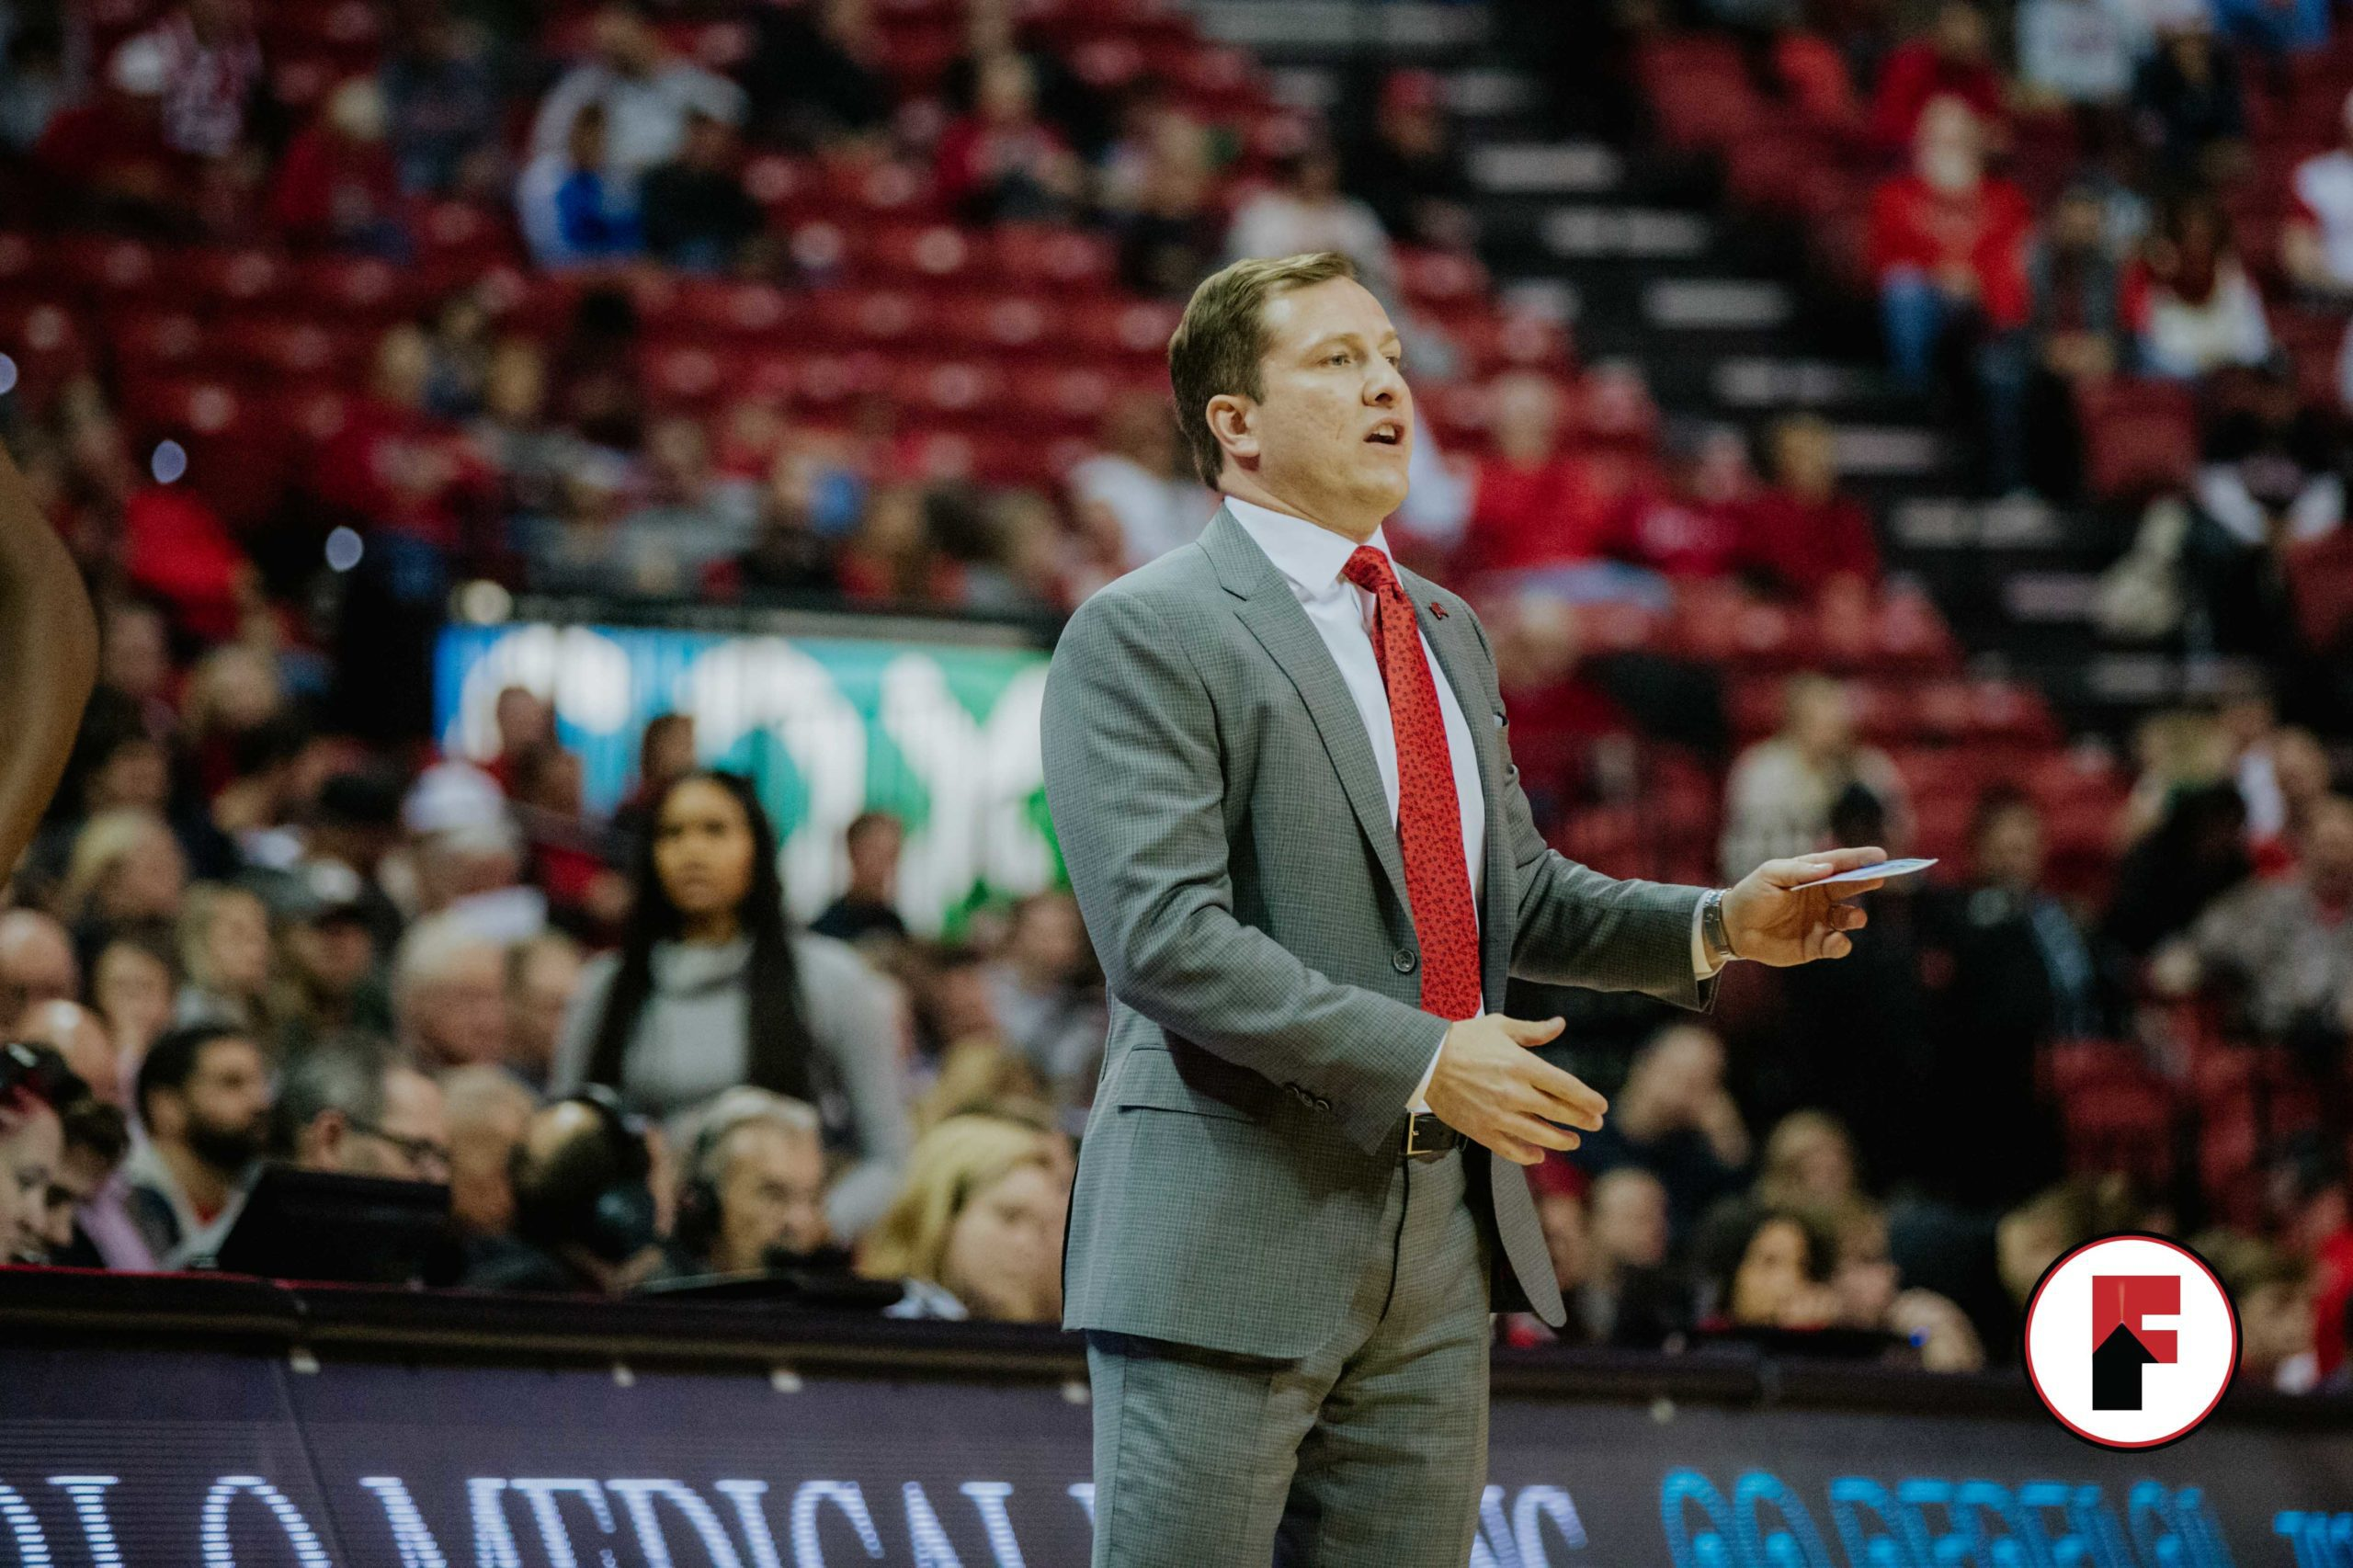 unlv basketball blog, unlv vs jackson state